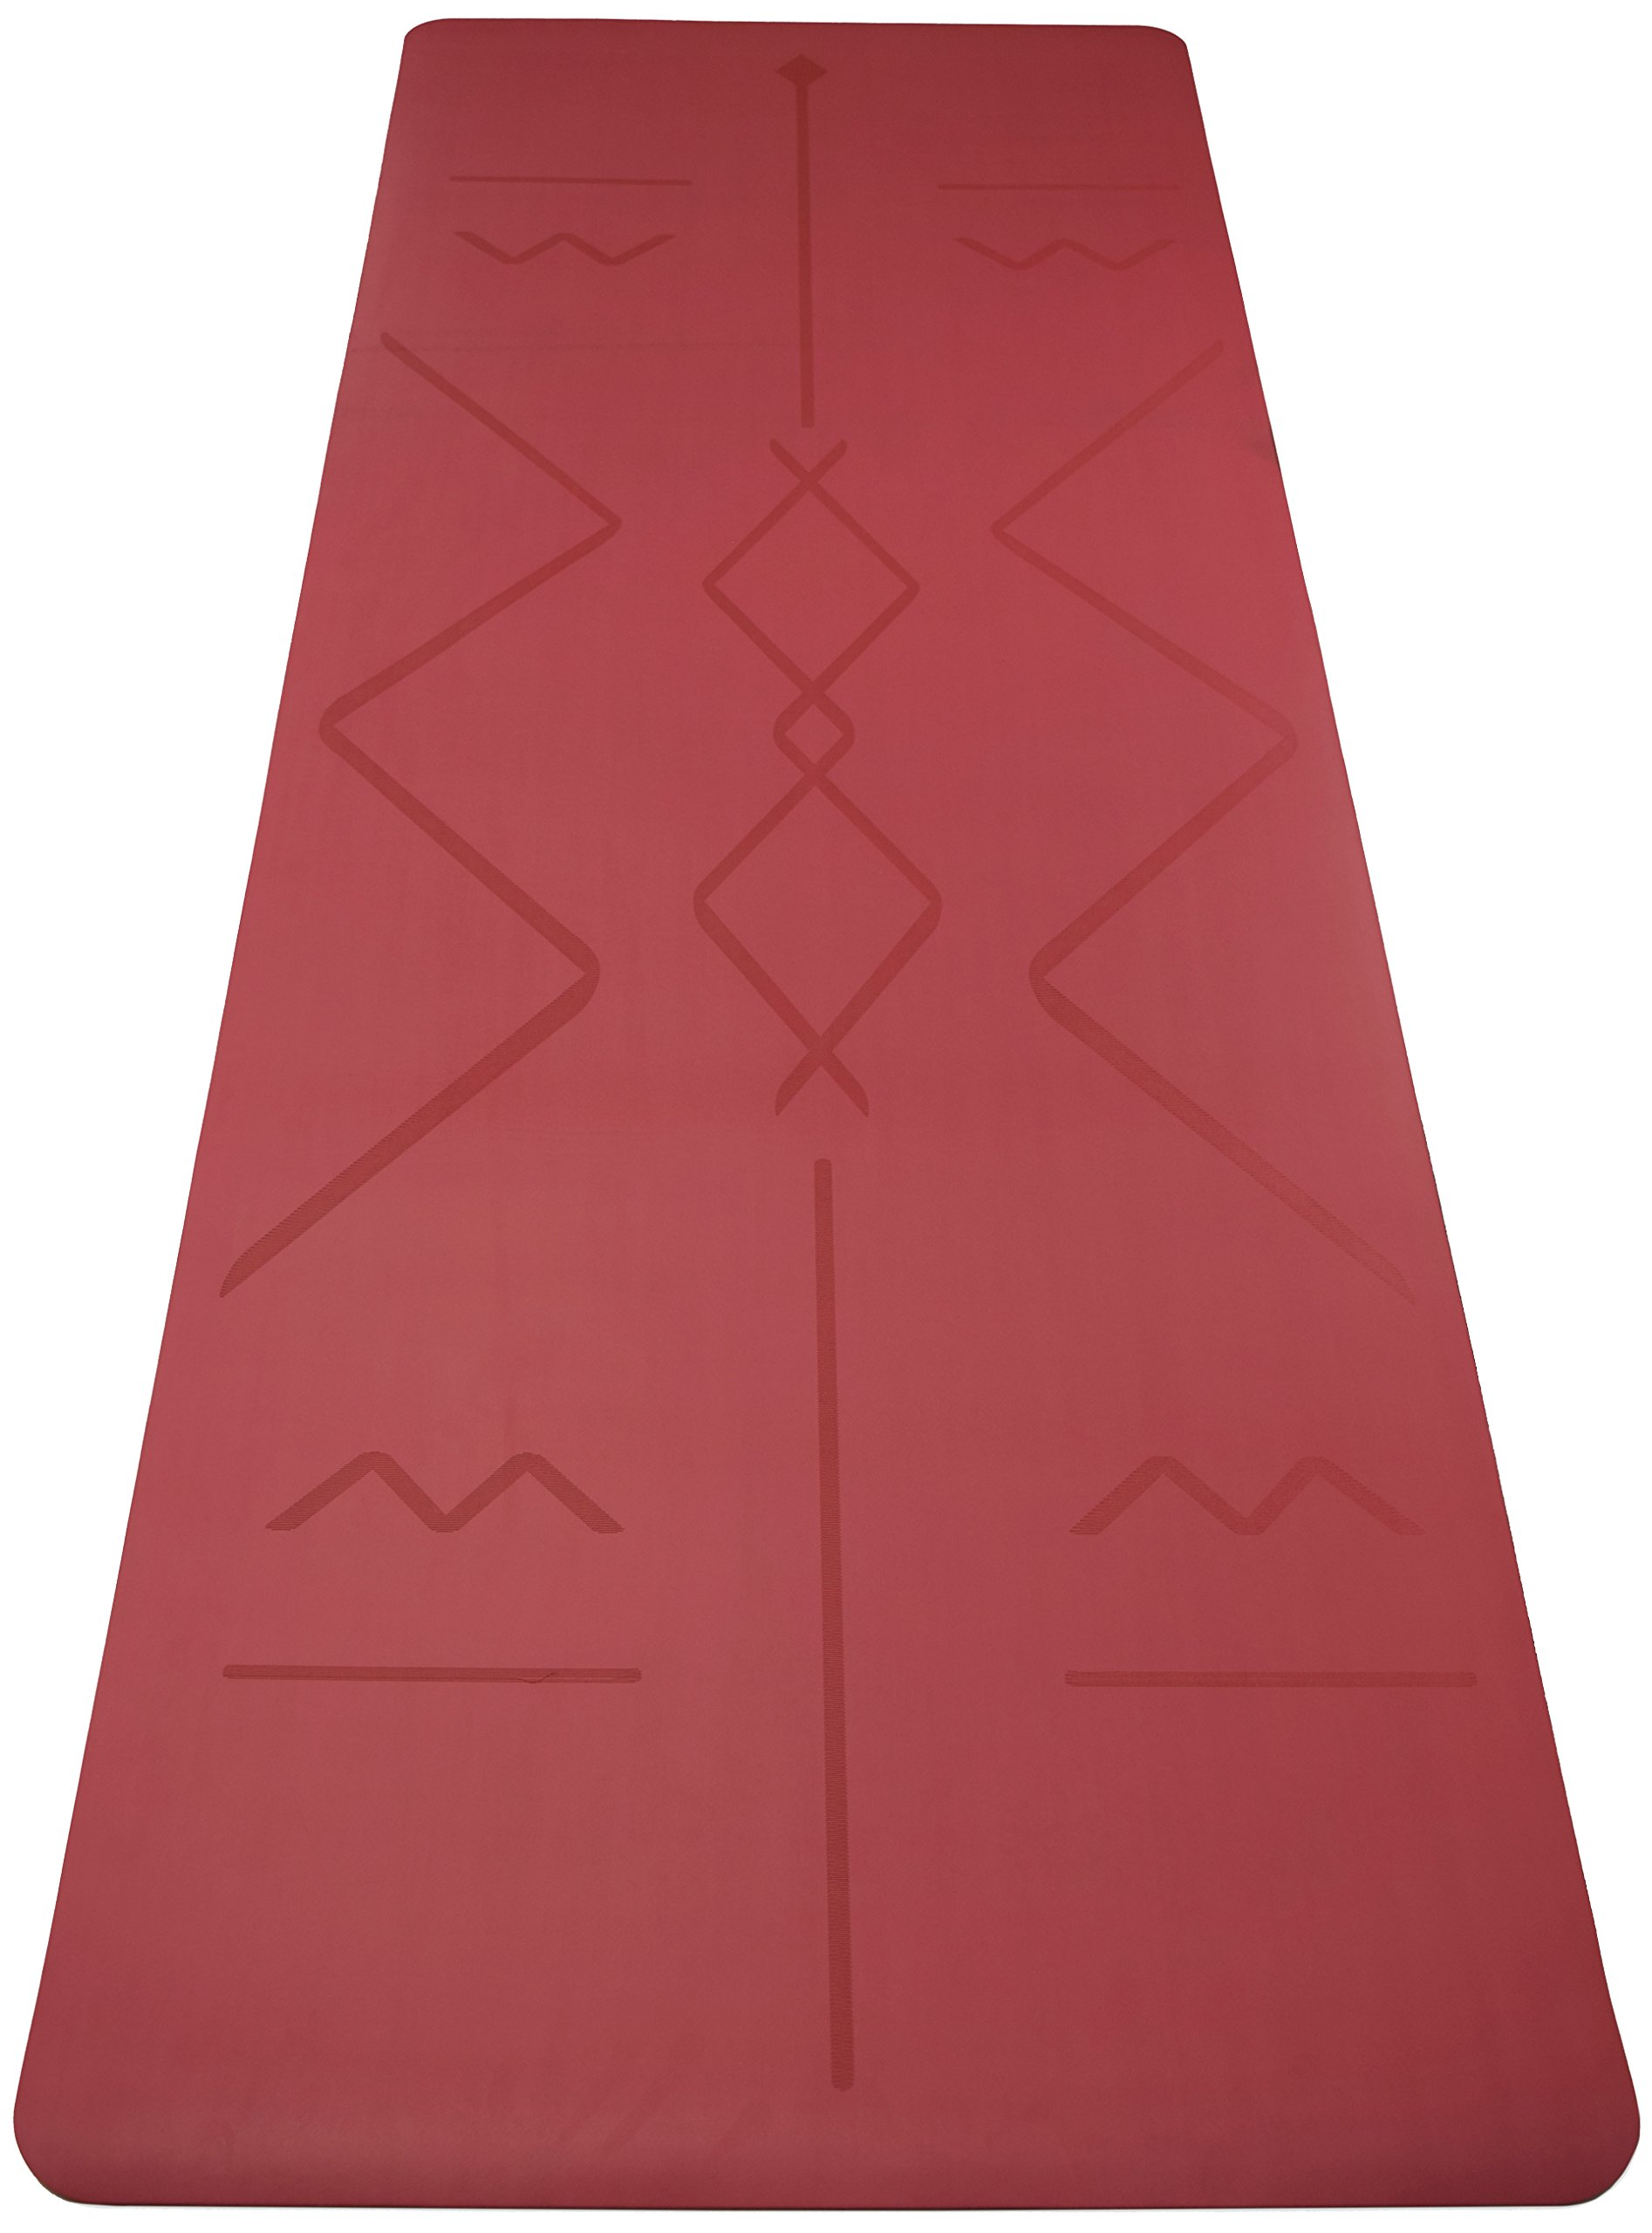 Box of 4 - RED Original OMphibian Yoga Mat with Laser Etched Alignment Lines – The Best Non - Slip (Wet or Dry) Eco-Friendly Natural Rubber Base Yoga Mat with Laser Etched Alignment Lines